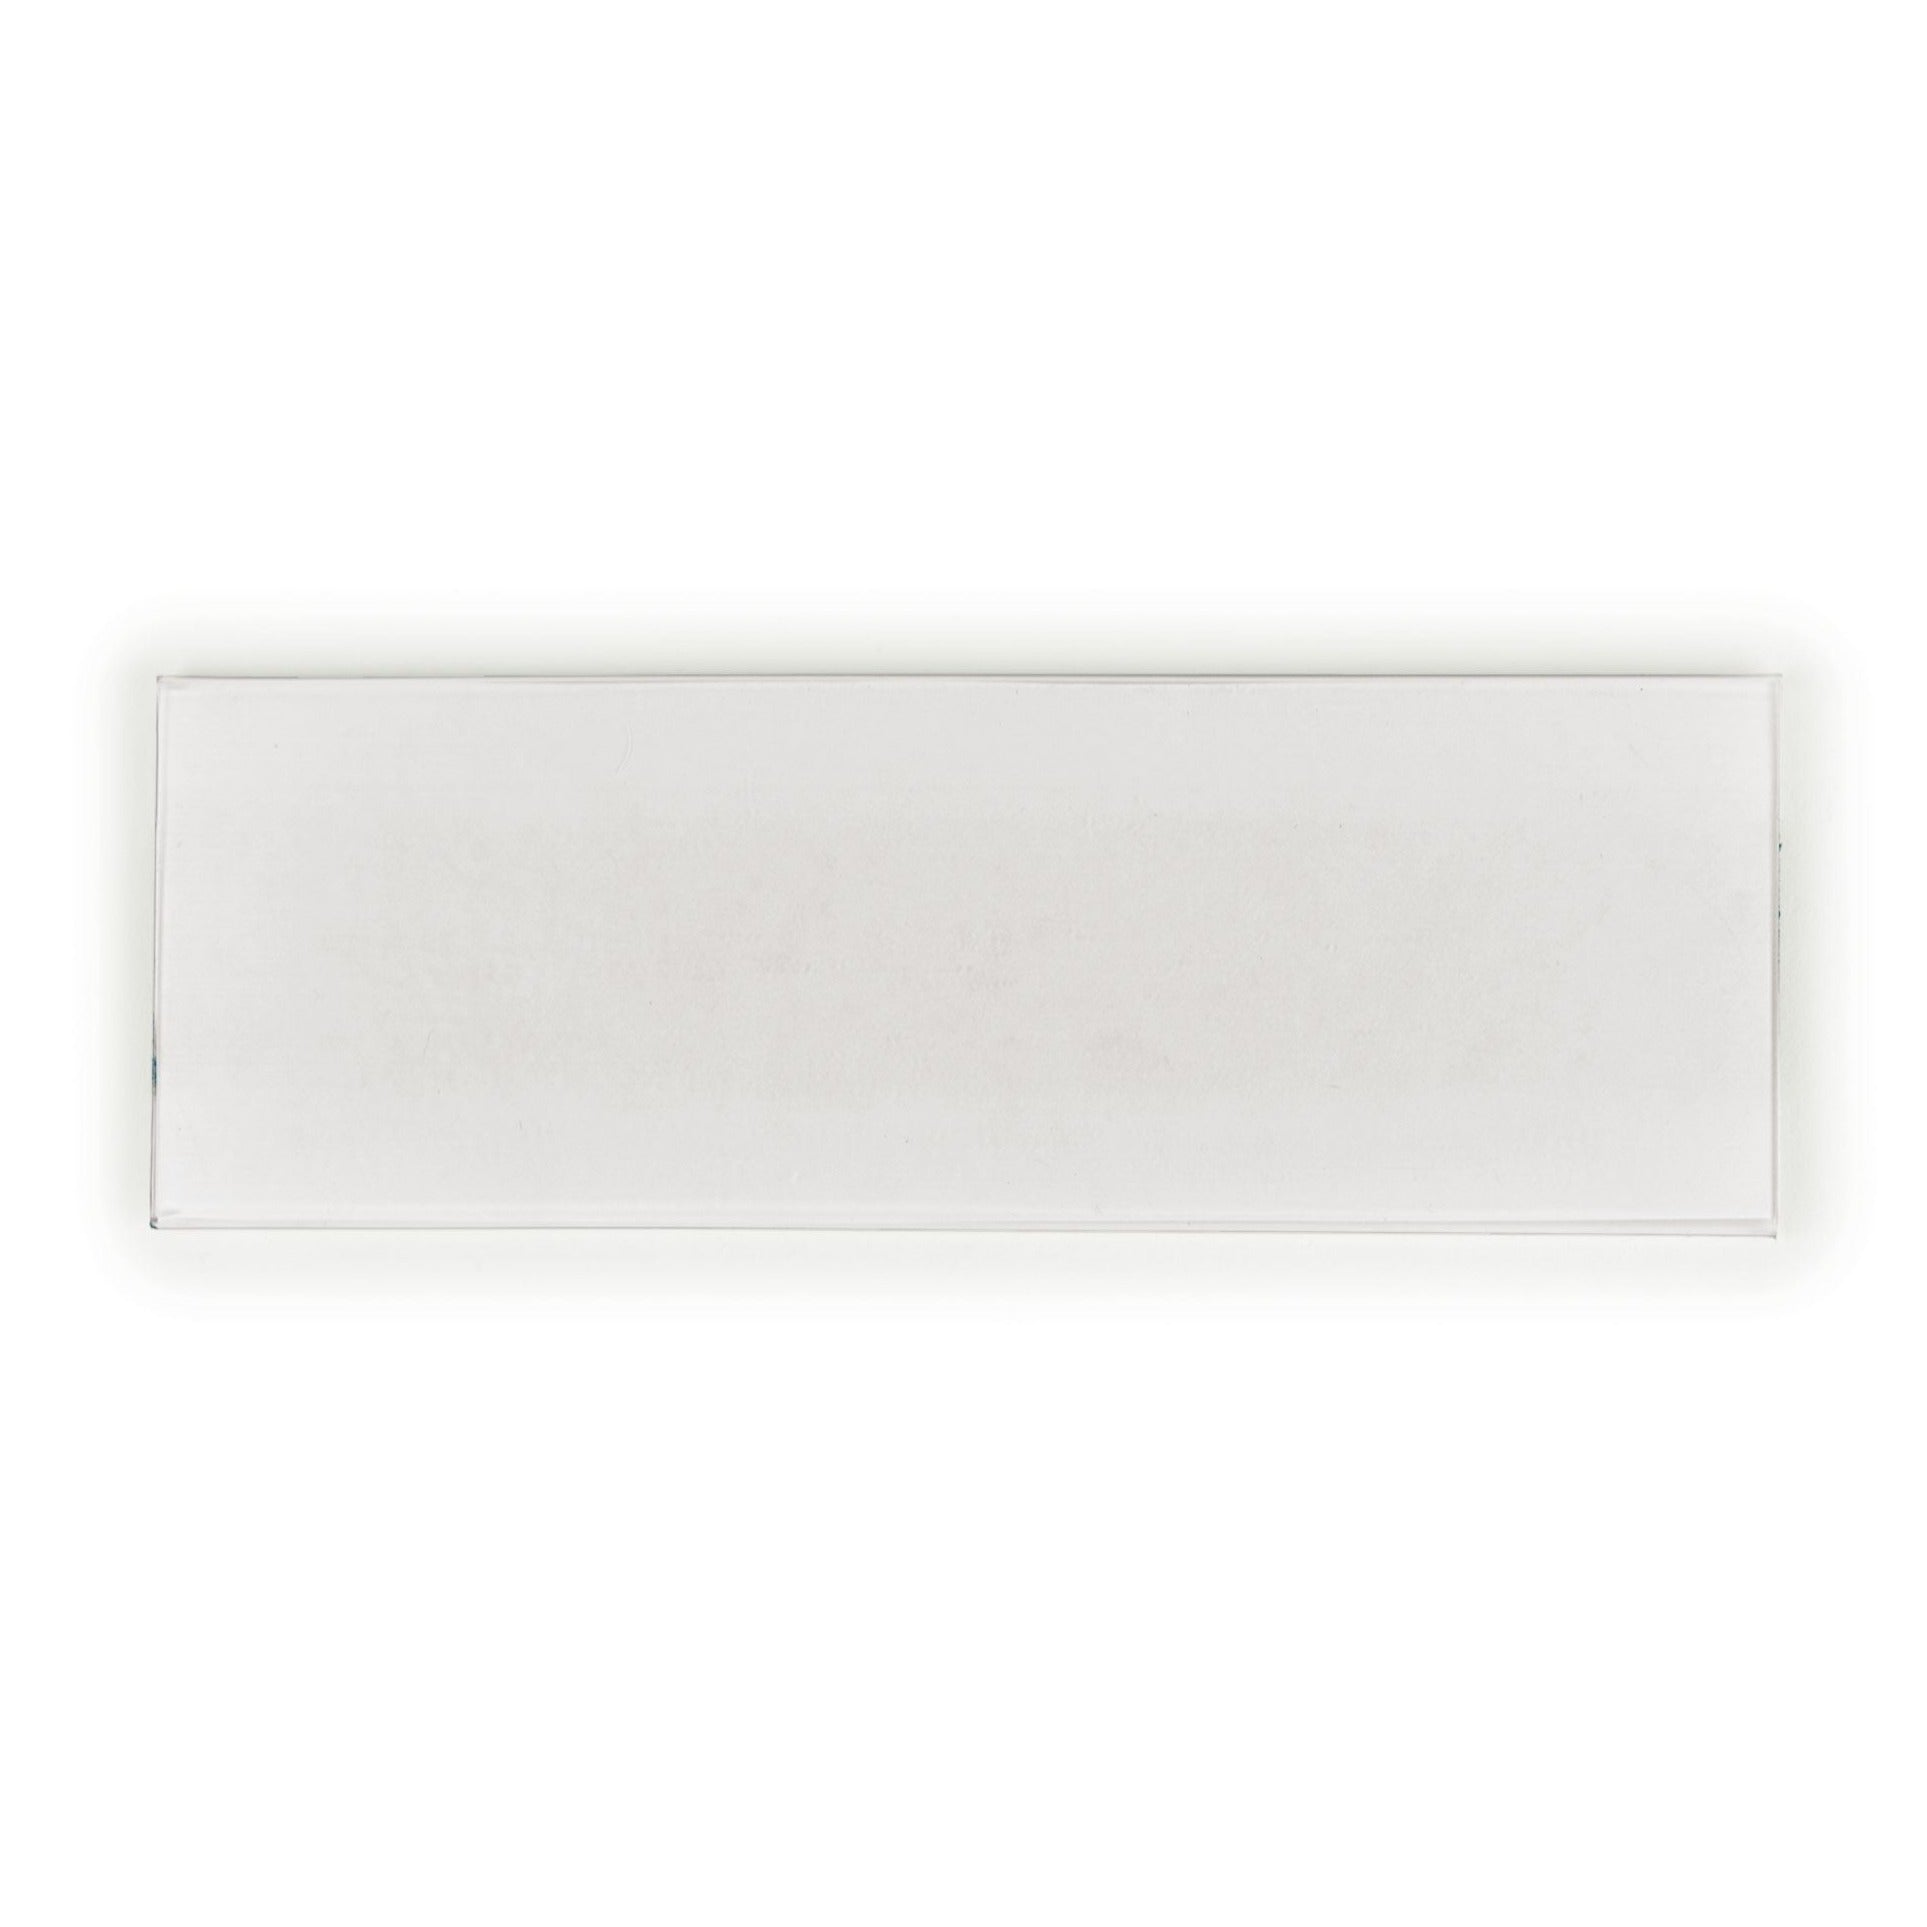 "Magnetic Hol-Dex® Label Holders, 2"" x 6"", 12pk"